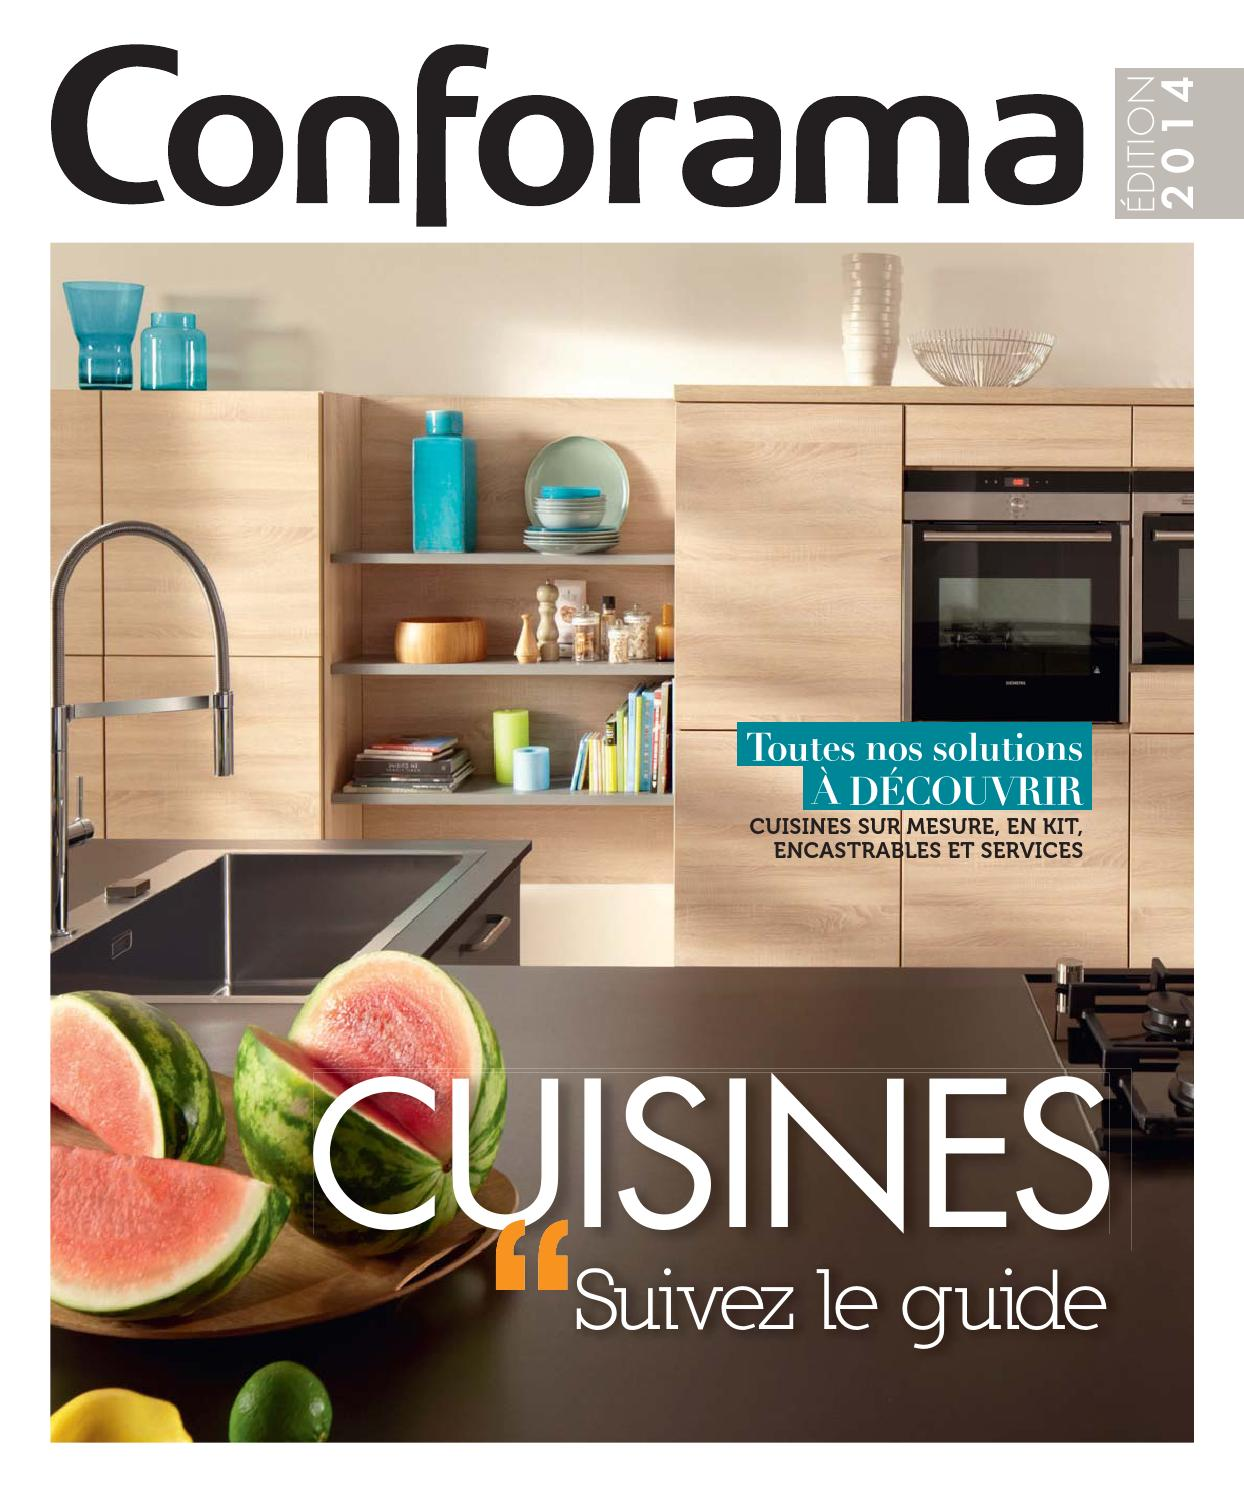 catalogue conforama guide cuisines 2014 by joe monroe. Black Bedroom Furniture Sets. Home Design Ideas